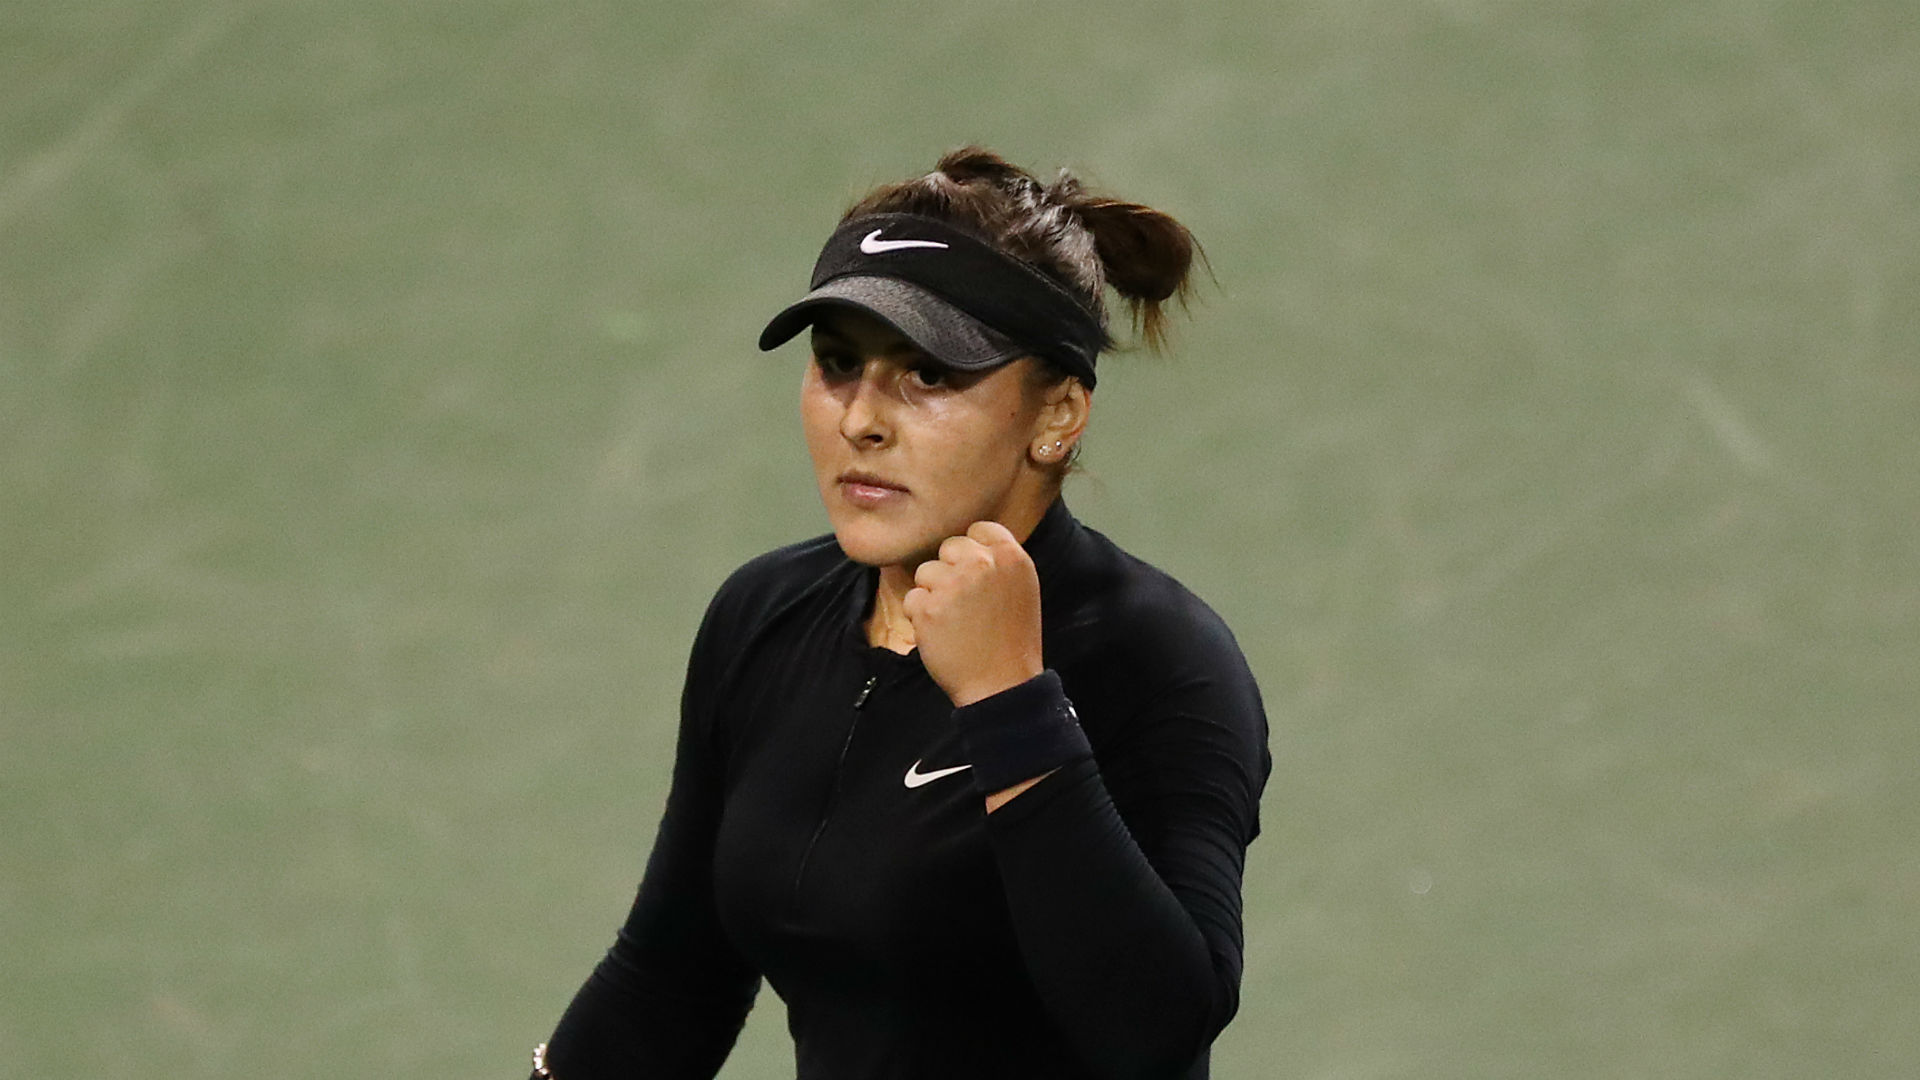 Who is Bianca Andreescu?